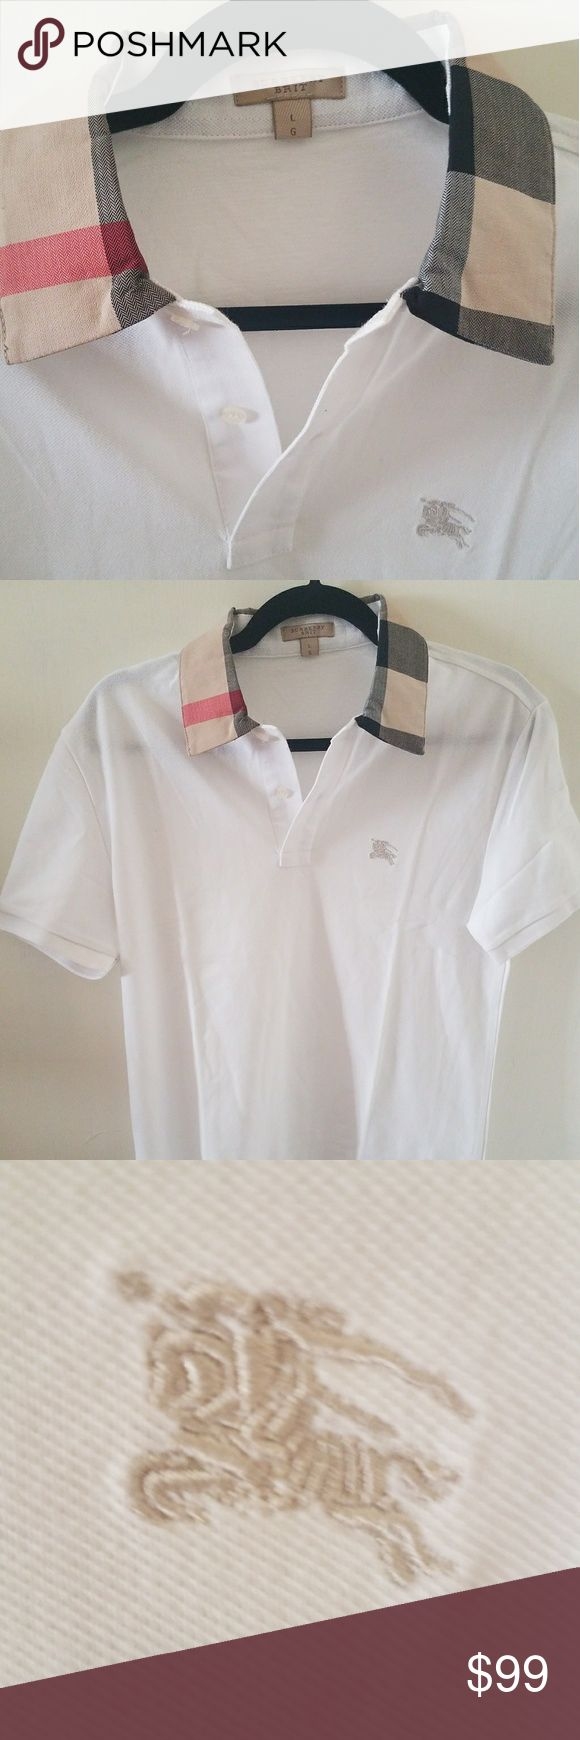 """100% Authentic Burberry Brit polo Shirt MEDIUM MEN MEDIUM 100% Authentic Burberry Brit polo Shirt Mens. Very Rare! This is a UK exclusive, not available in the USA!  L on tag but that is UK Sizing, equals MEDIUM in US.  PRICE IS FIRM  BRAND NEW!!! No tag   23"""" Armpit to armpit. Please compare LAST PIC  Better Price through PPal Text me  Eric 925-984-1655  Low-ball offers will be ignored, sorry no trades  If you have an offer, make an offer, don't comment and ask if I'll take a certain…"""